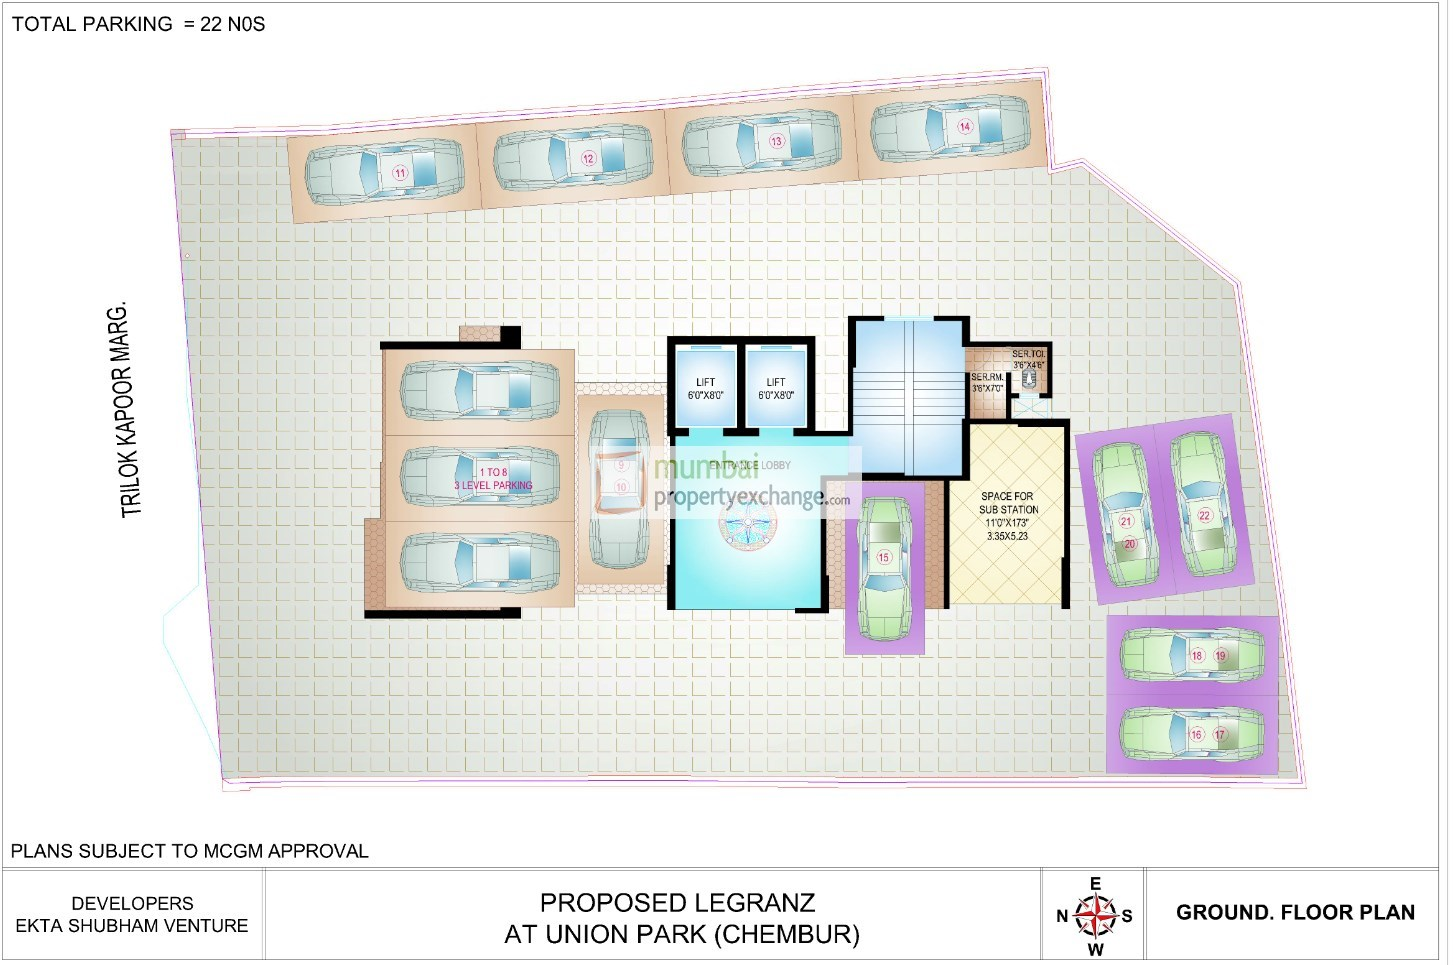 Ekta Legranz Lay Out Plan